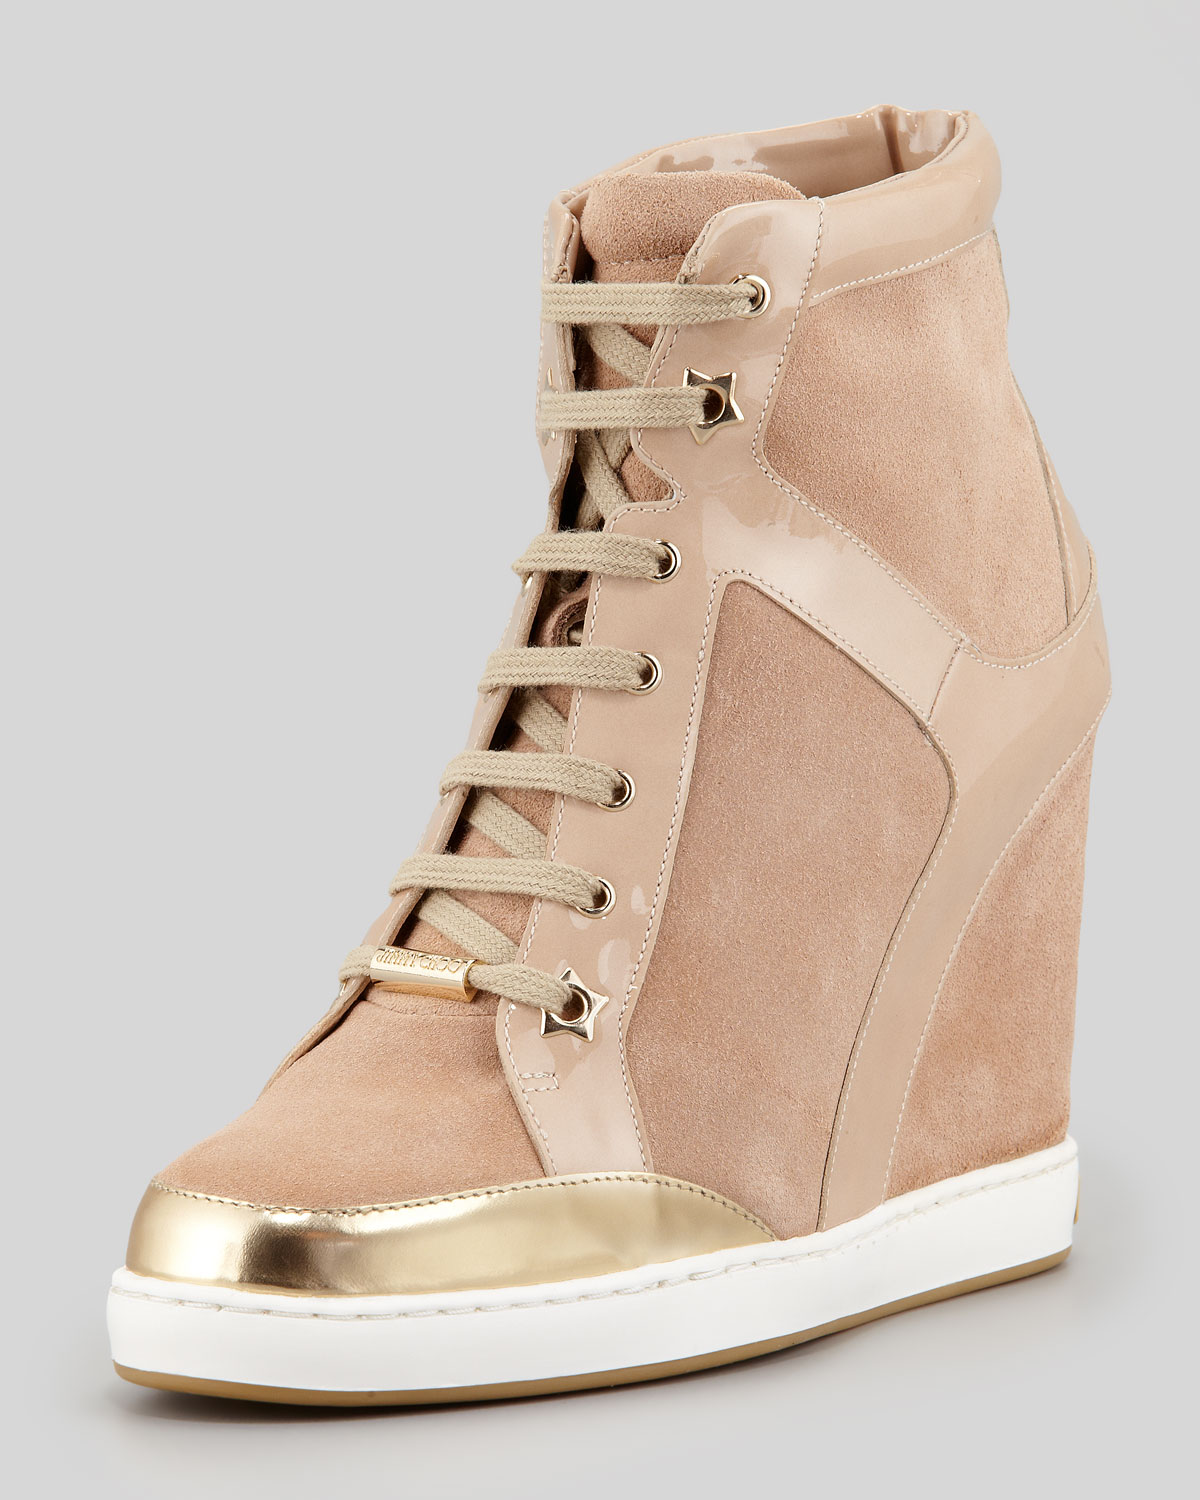 f3cc908e0885 Lyst - Jimmy Choo Panama Suedepatent Leather Wedge Sneaker Nude in ...